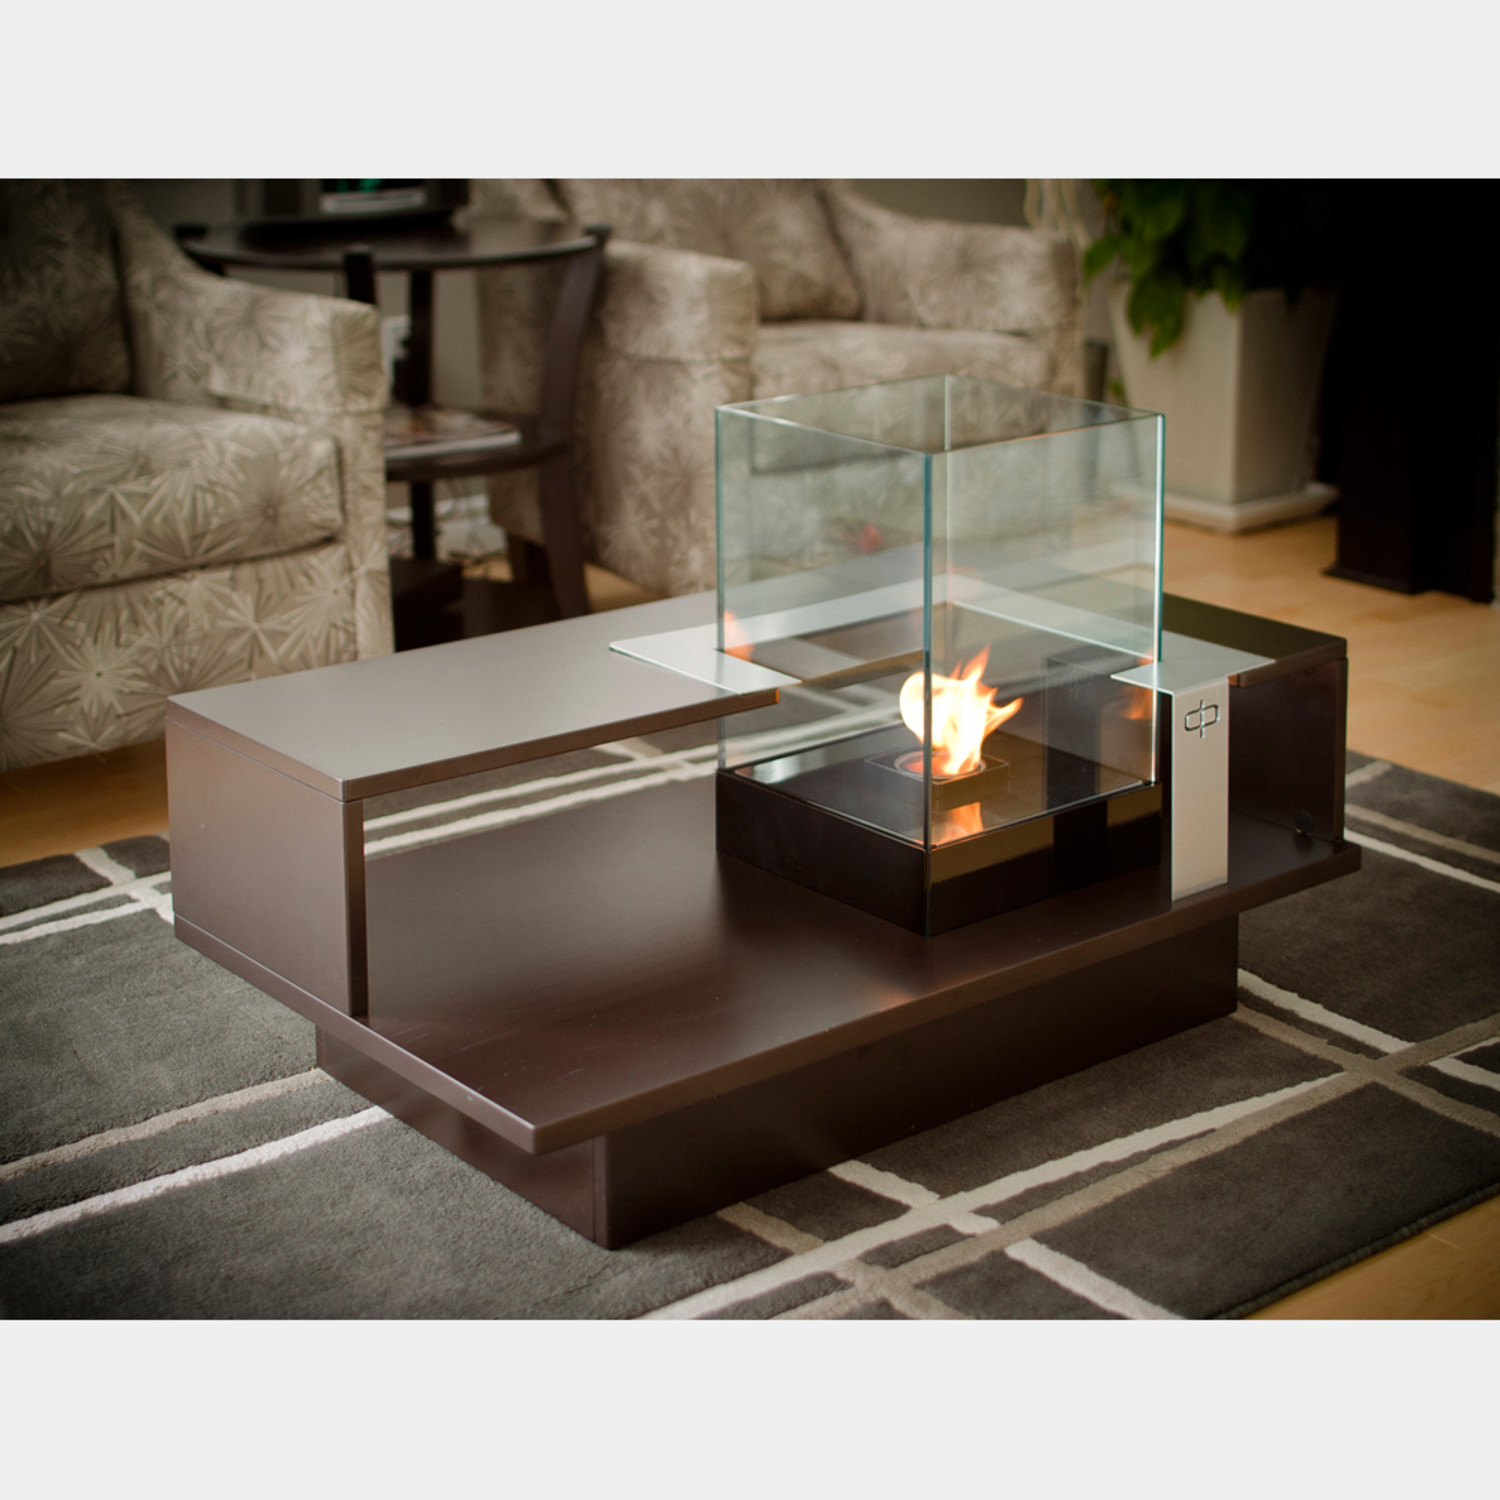 Level Fire Coffee Table pact Black Textured DecorPro